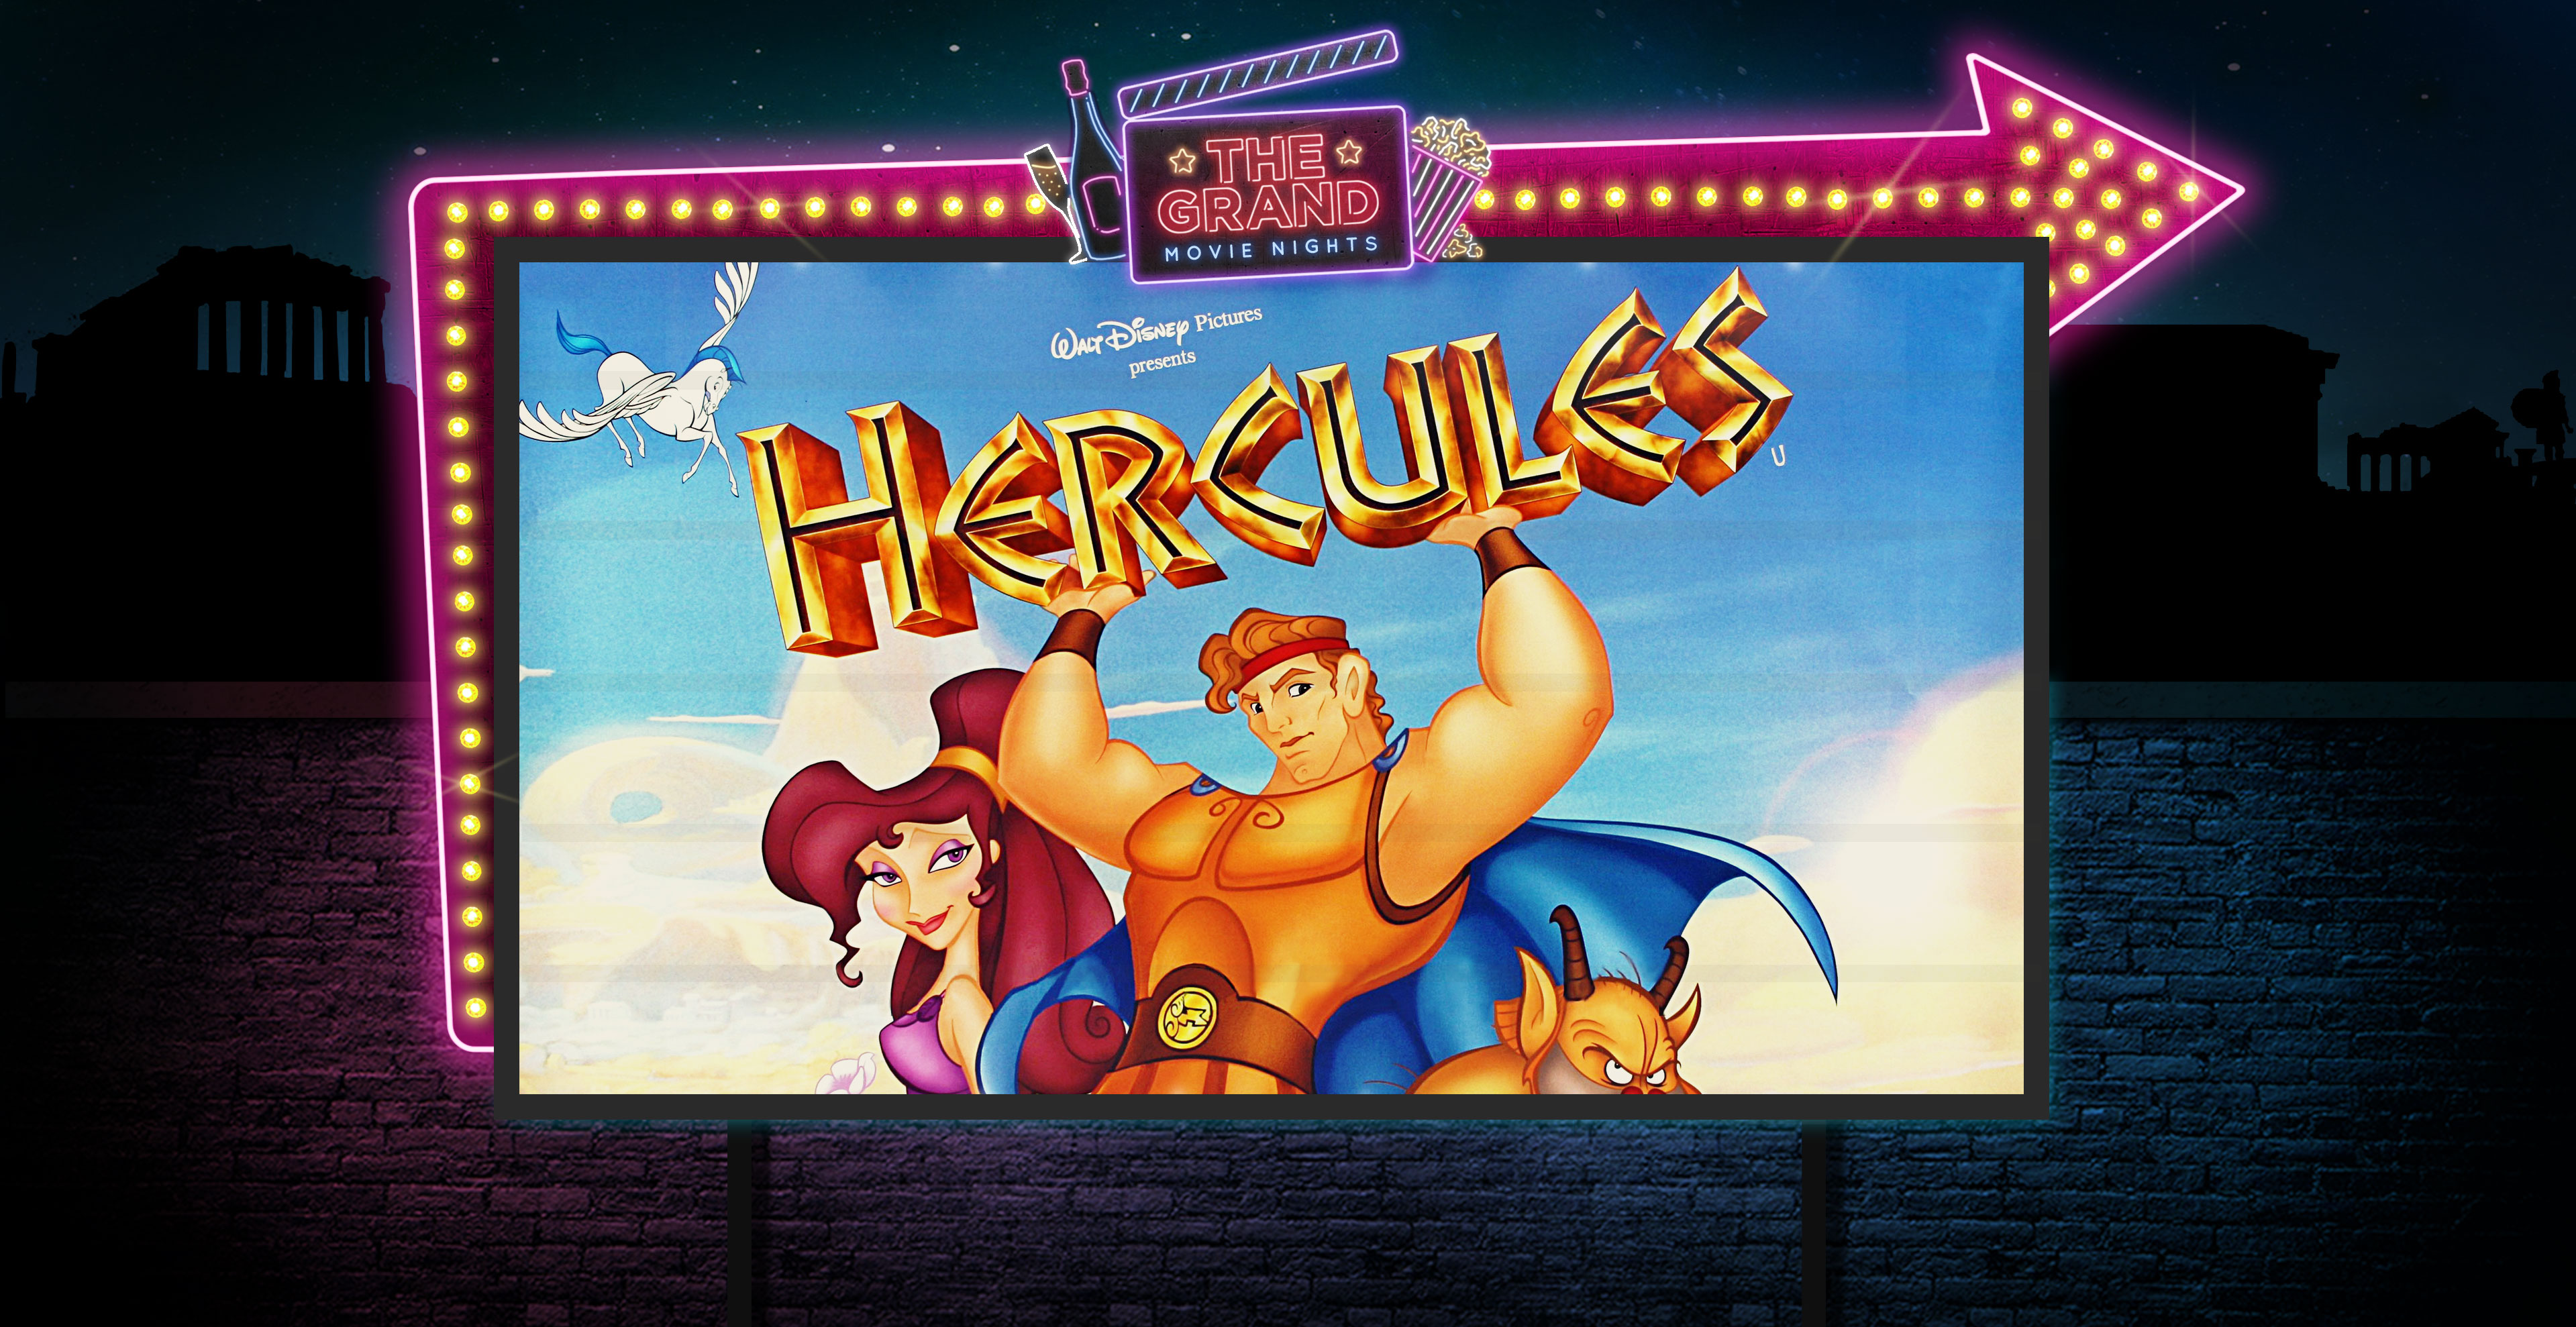 Hercules Movie Night